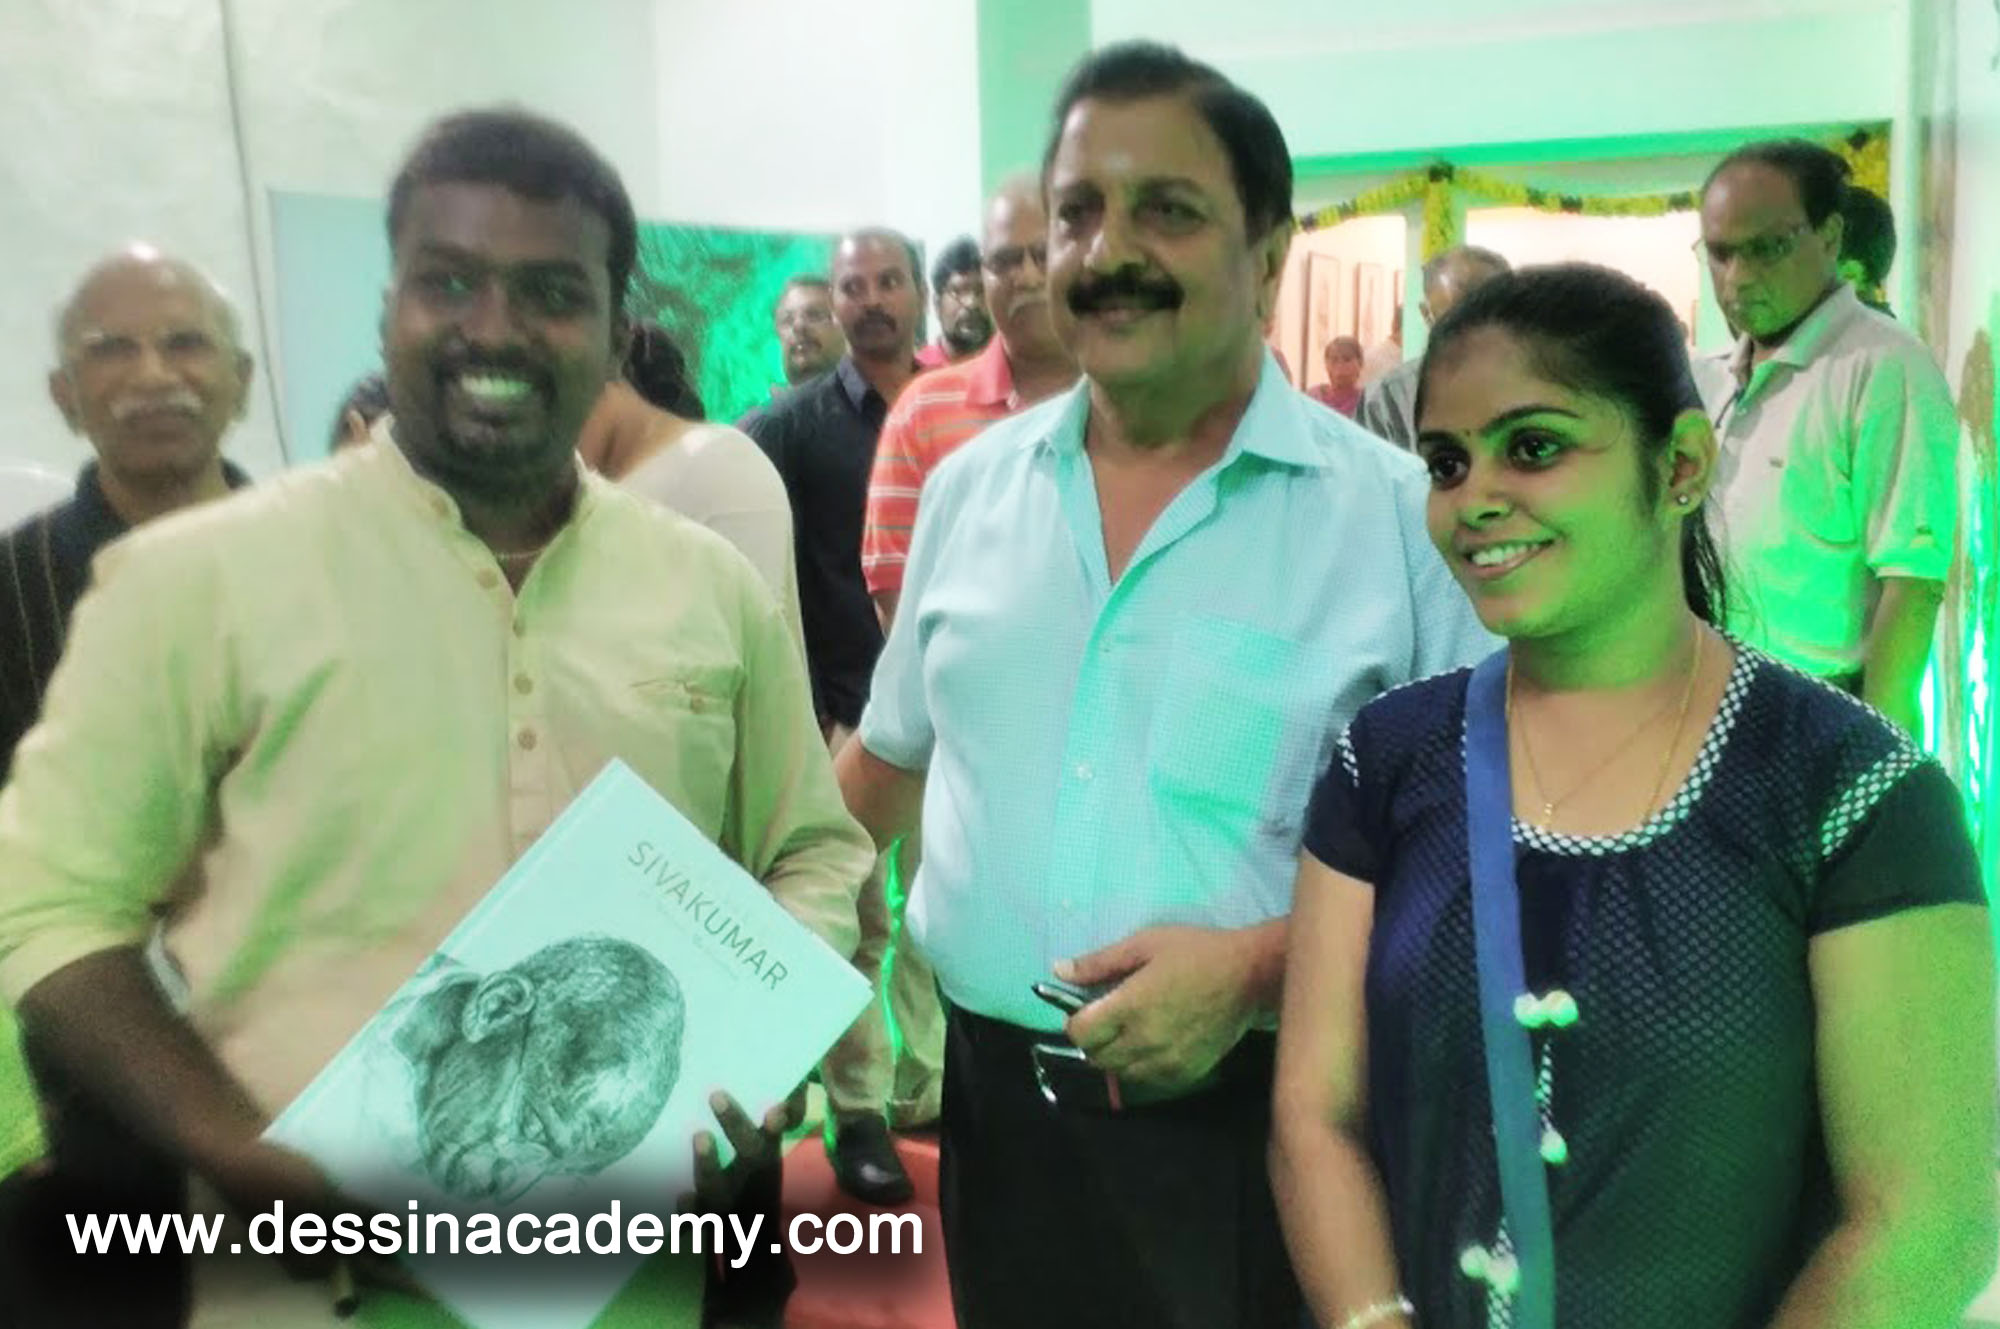 Dessin School of arts Event Gallery 4, Drawing Institute for adults in AdhanurMom s Care Play School